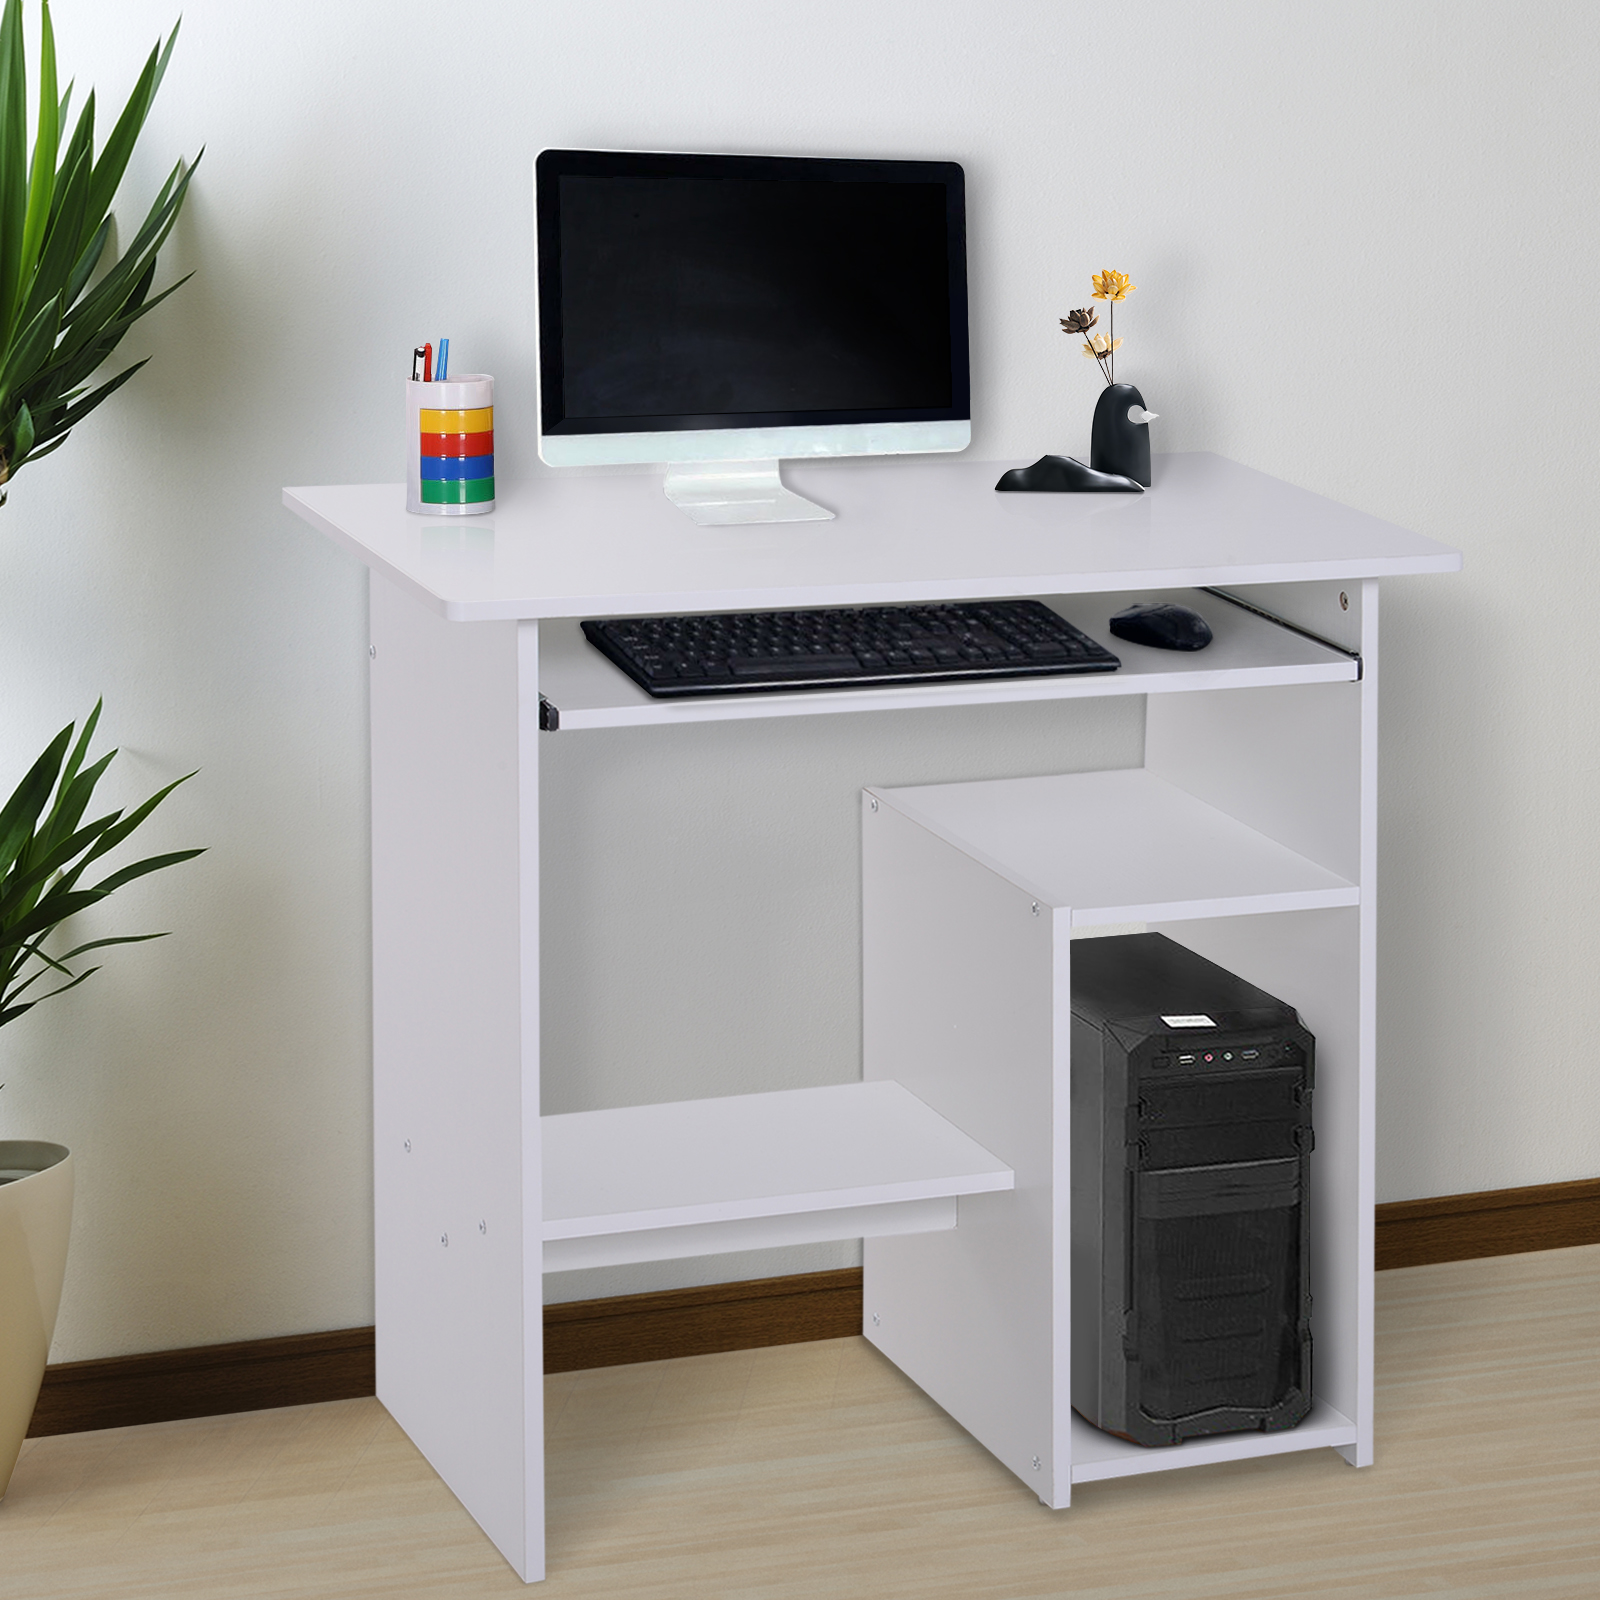 Picture of: Homcom Compact Small Computer Table Wooden Desk Keyboard Tray Storage White Ebay